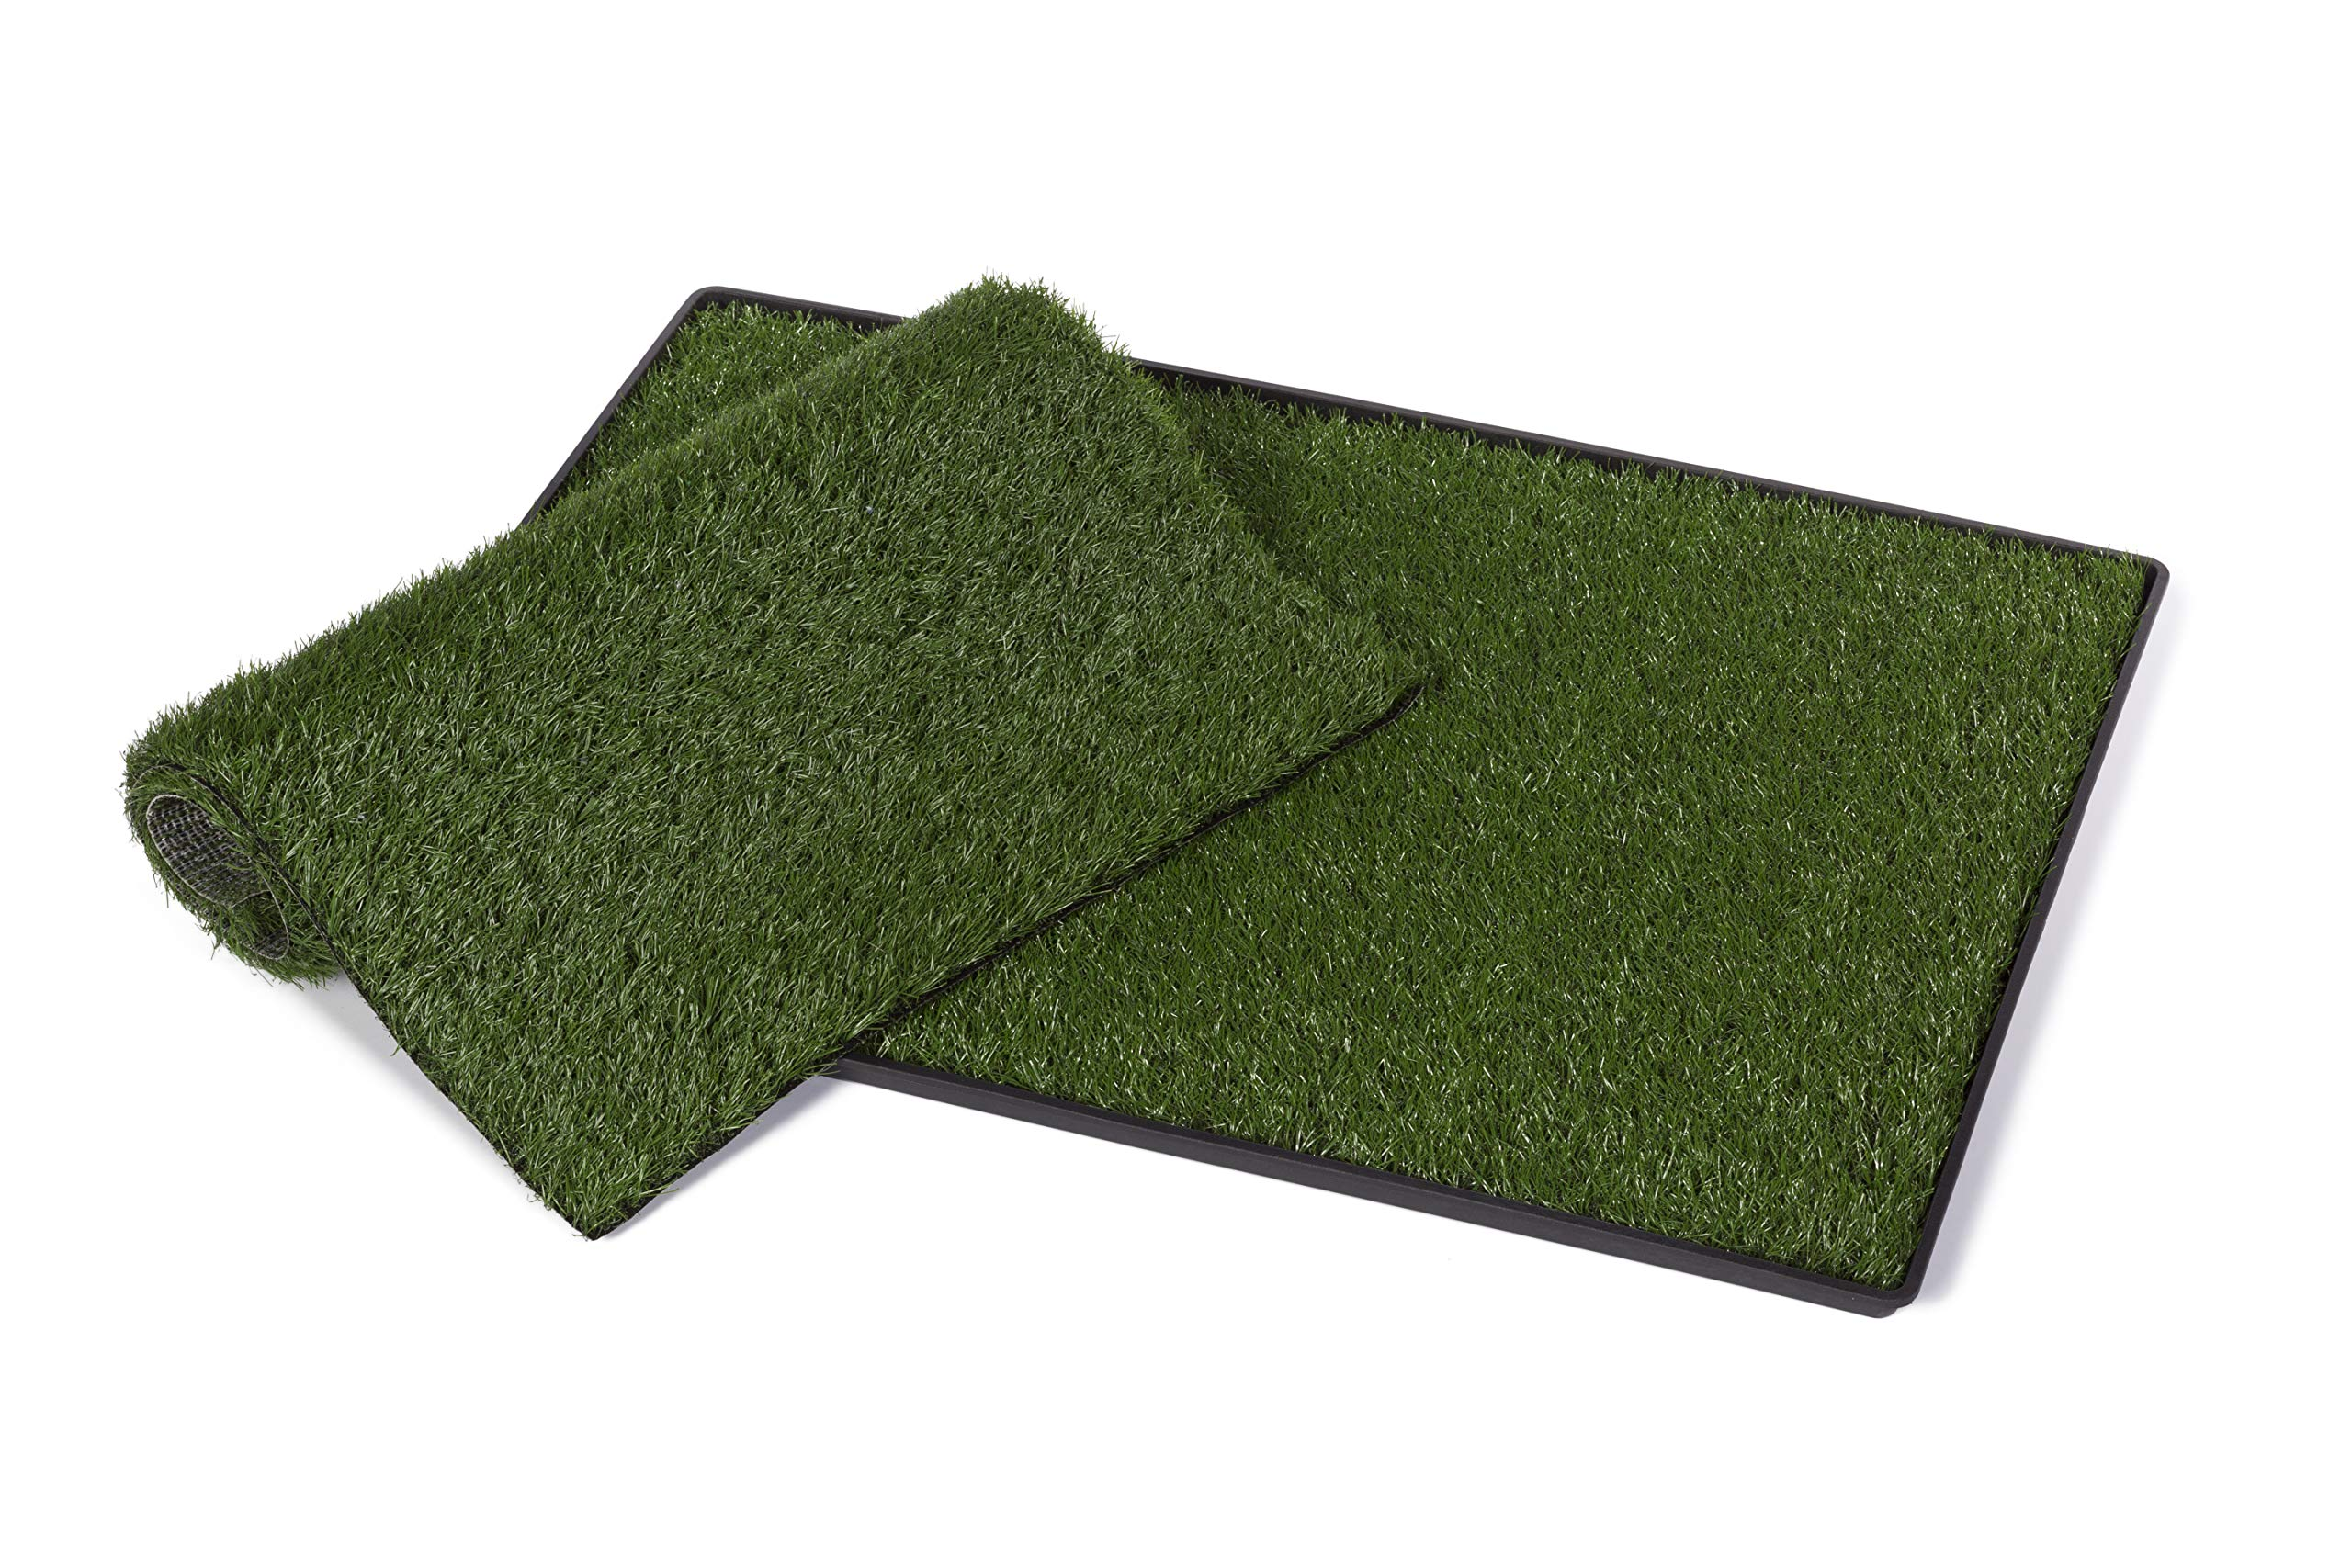 Prevue Pet Products Large Tinkle Turf with Replacement Pad 502K, Green by Prevue Hendryx